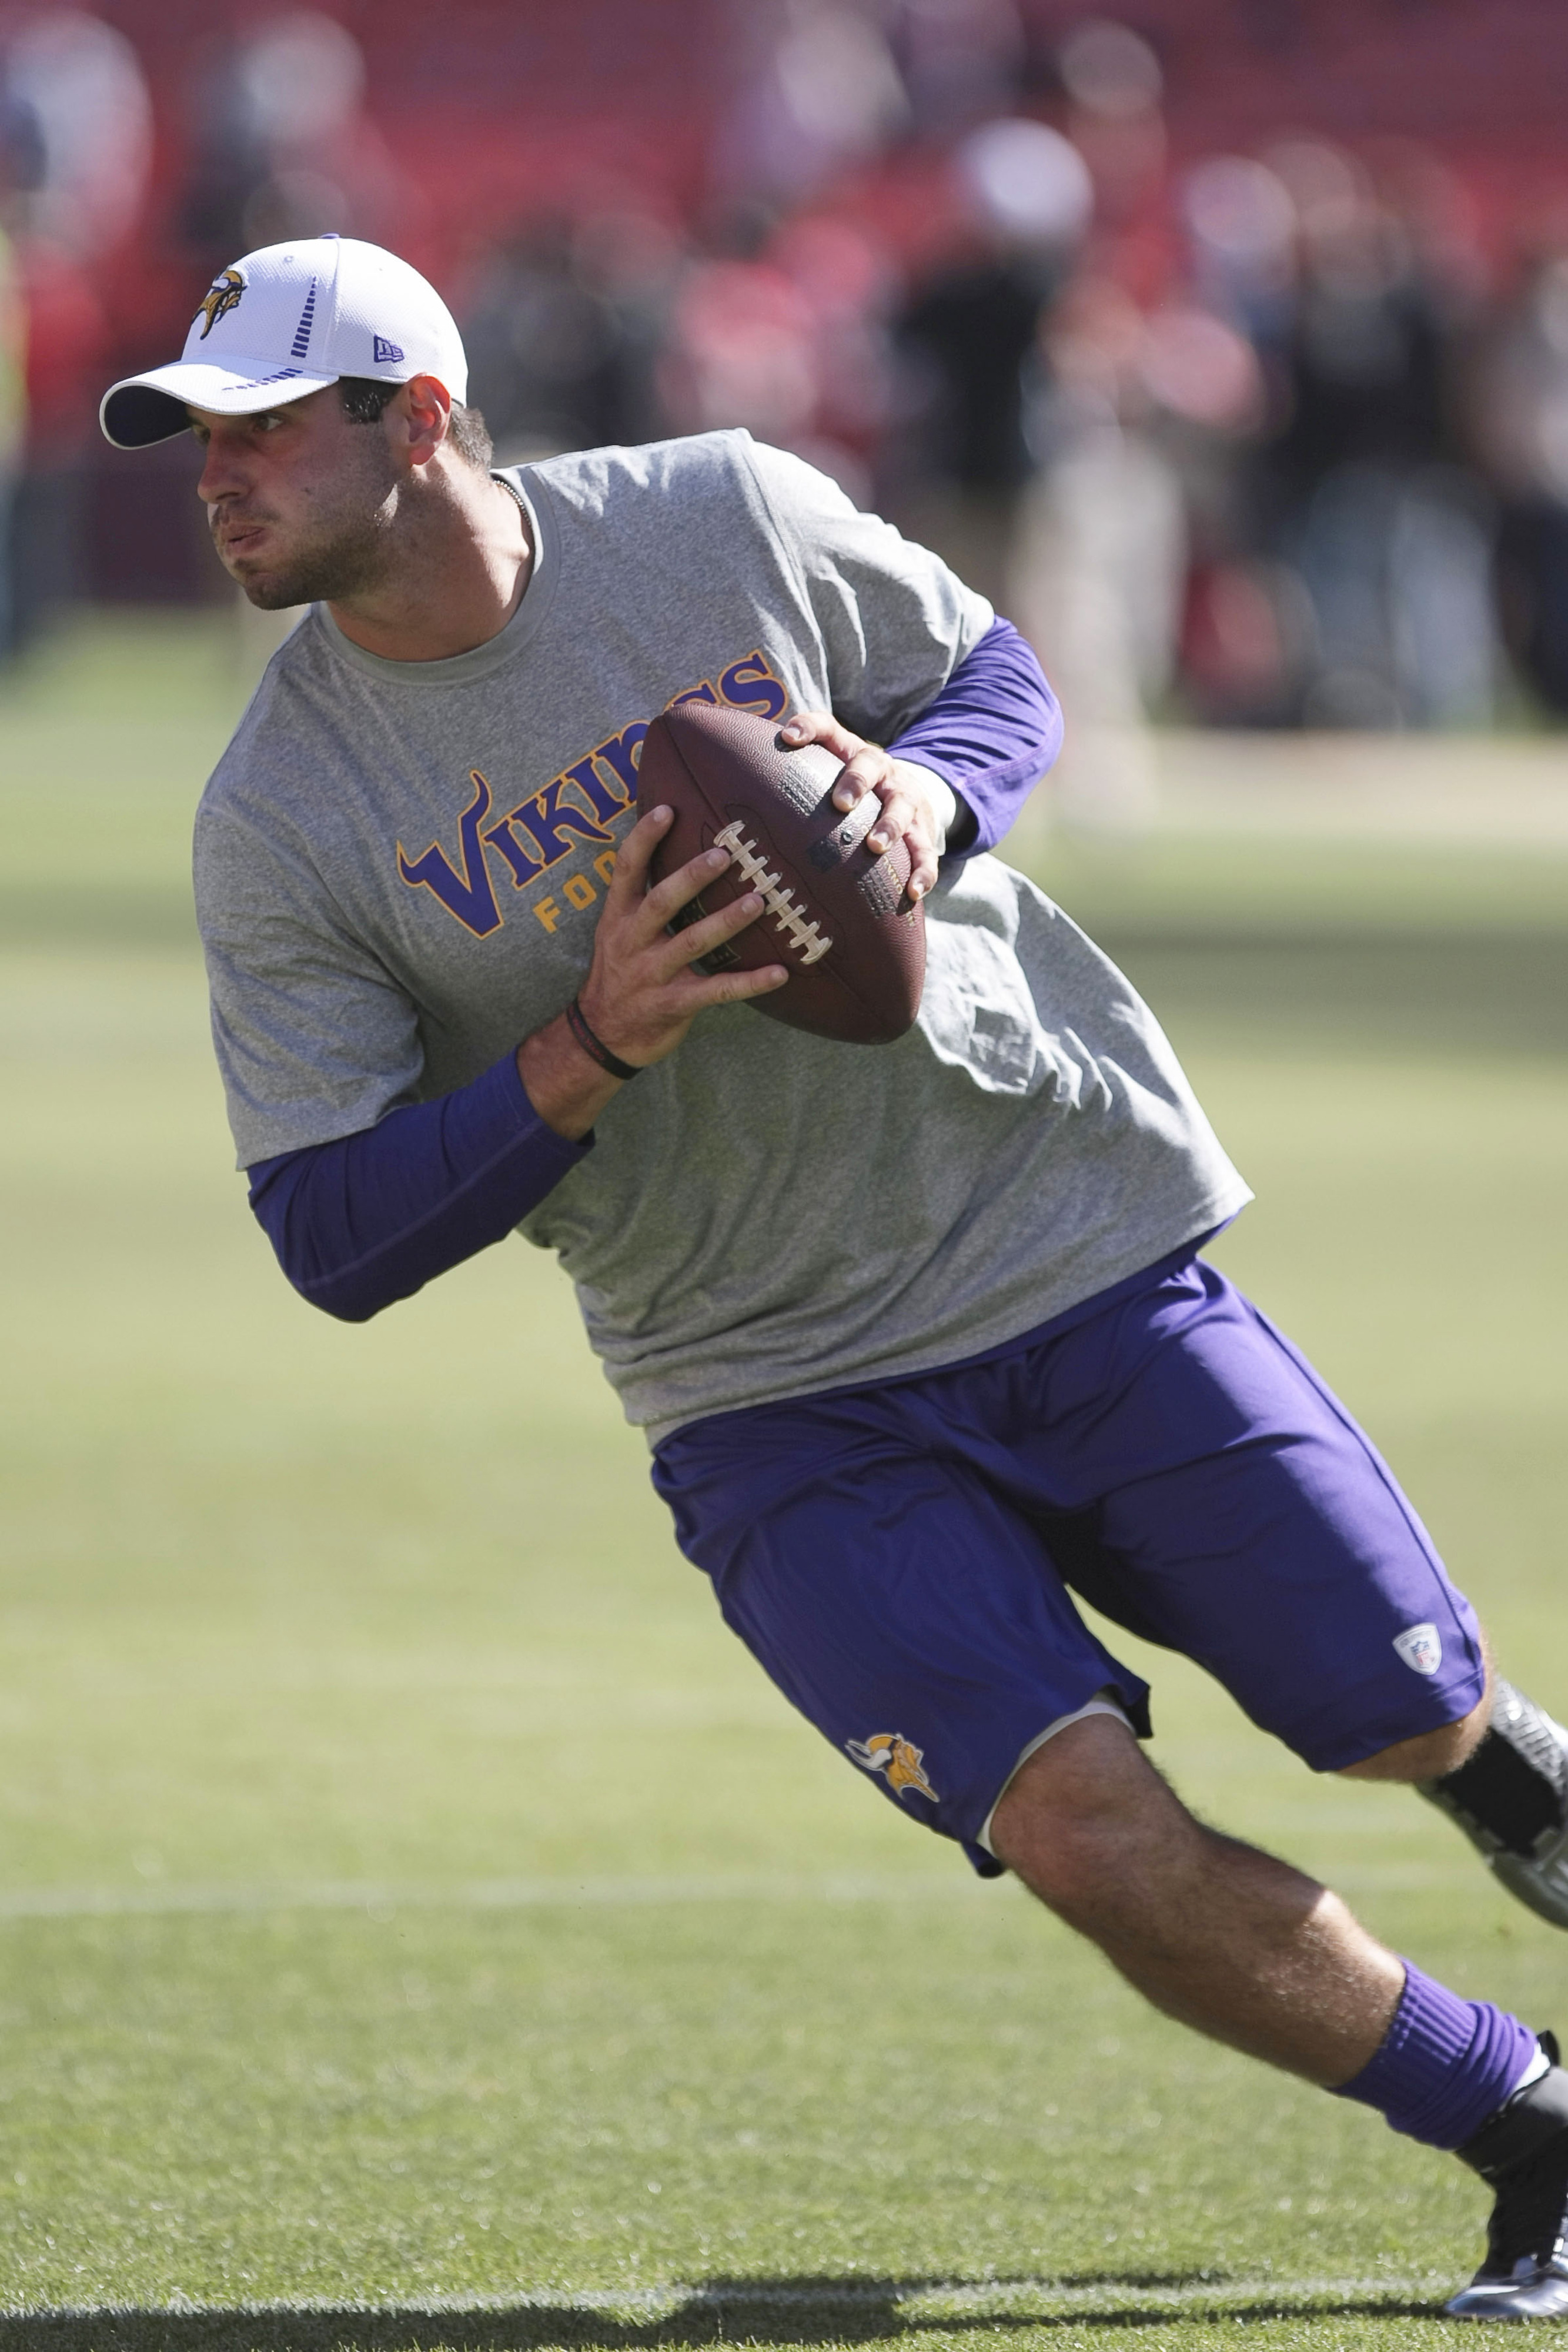 August 10, 2012; San Francisco, CA, USA; Minnesota Vikings quarterback Christian Ponder (7) warms up before the game against the San Francisco 49ers at Candlestick Park. Mandatory Credit: Kelley L Cox-US PRESSWIRE